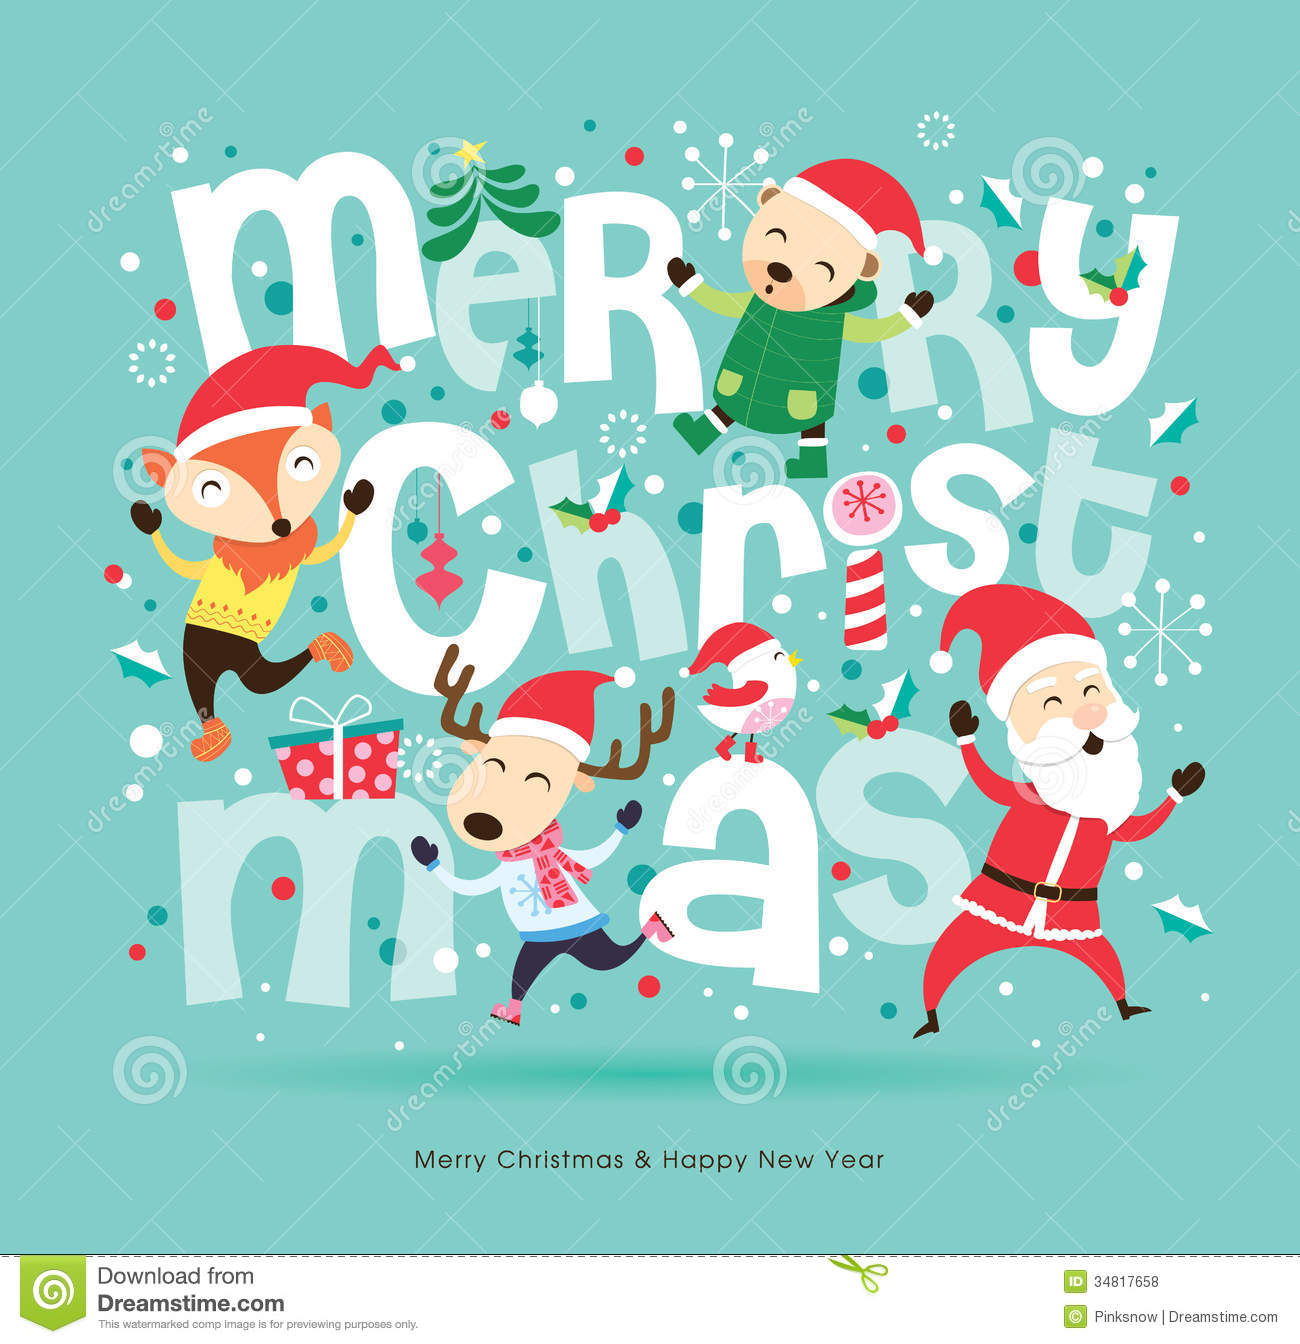 Download Christmas Cards.Christmas Card Stock Vector Illustration Of Festive 34817658